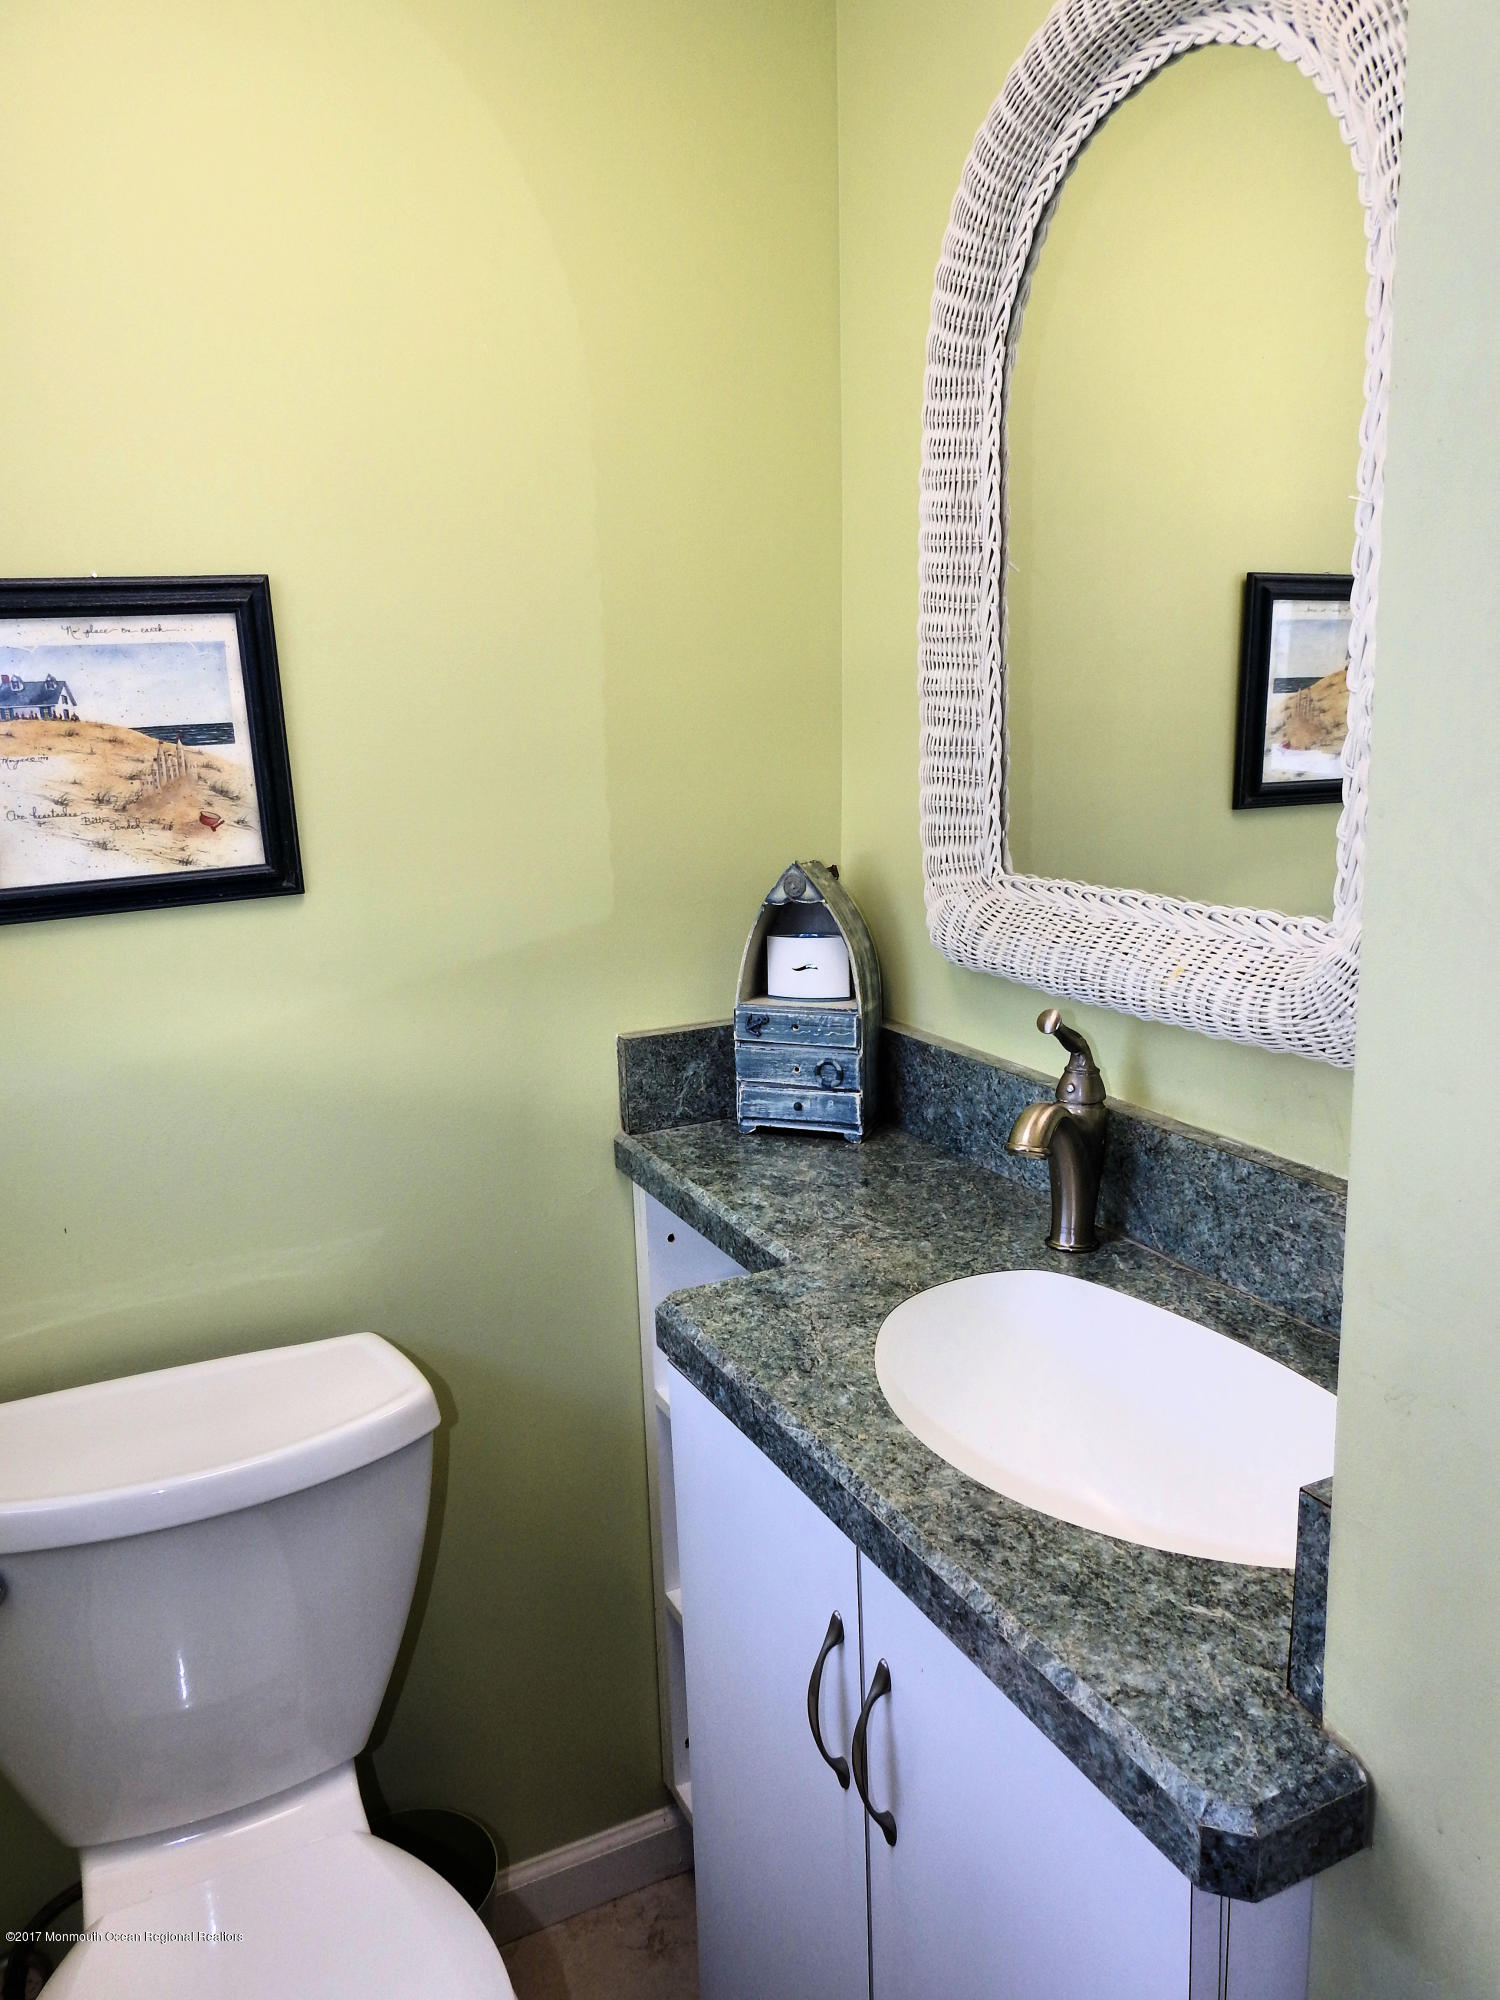 112 W Tide Way - Picture 12